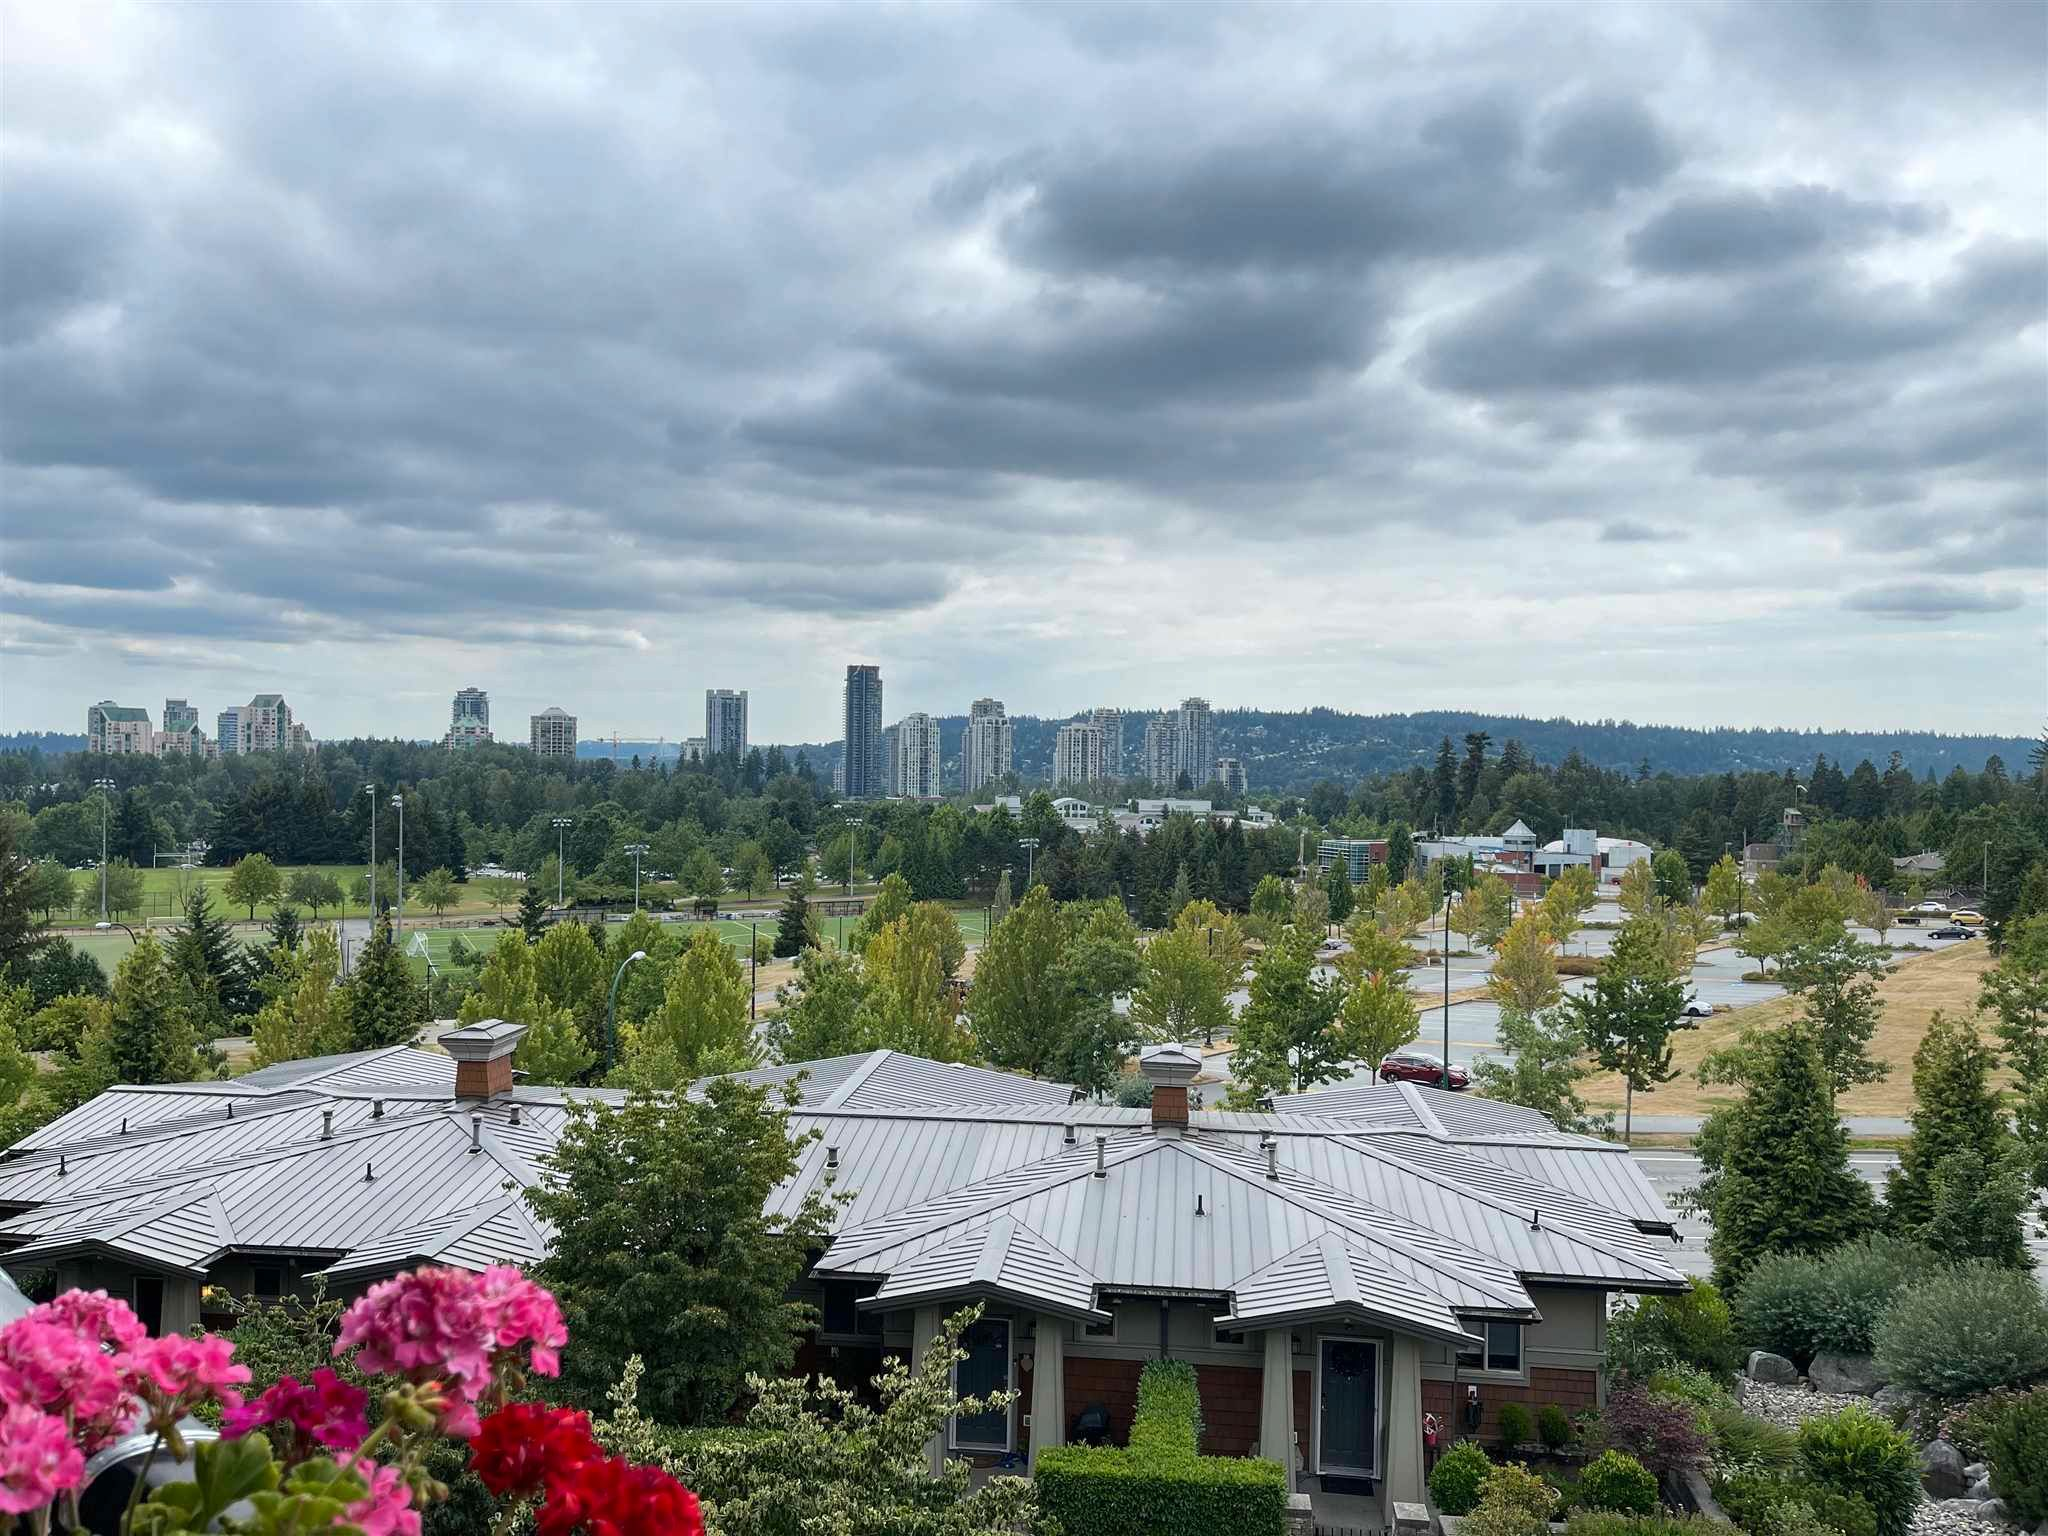 Main Photo: 306 3082 DAYANEE SPRINGS Boulevard in Coquitlam: Westwood Plateau Condo for sale : MLS®# R2601526